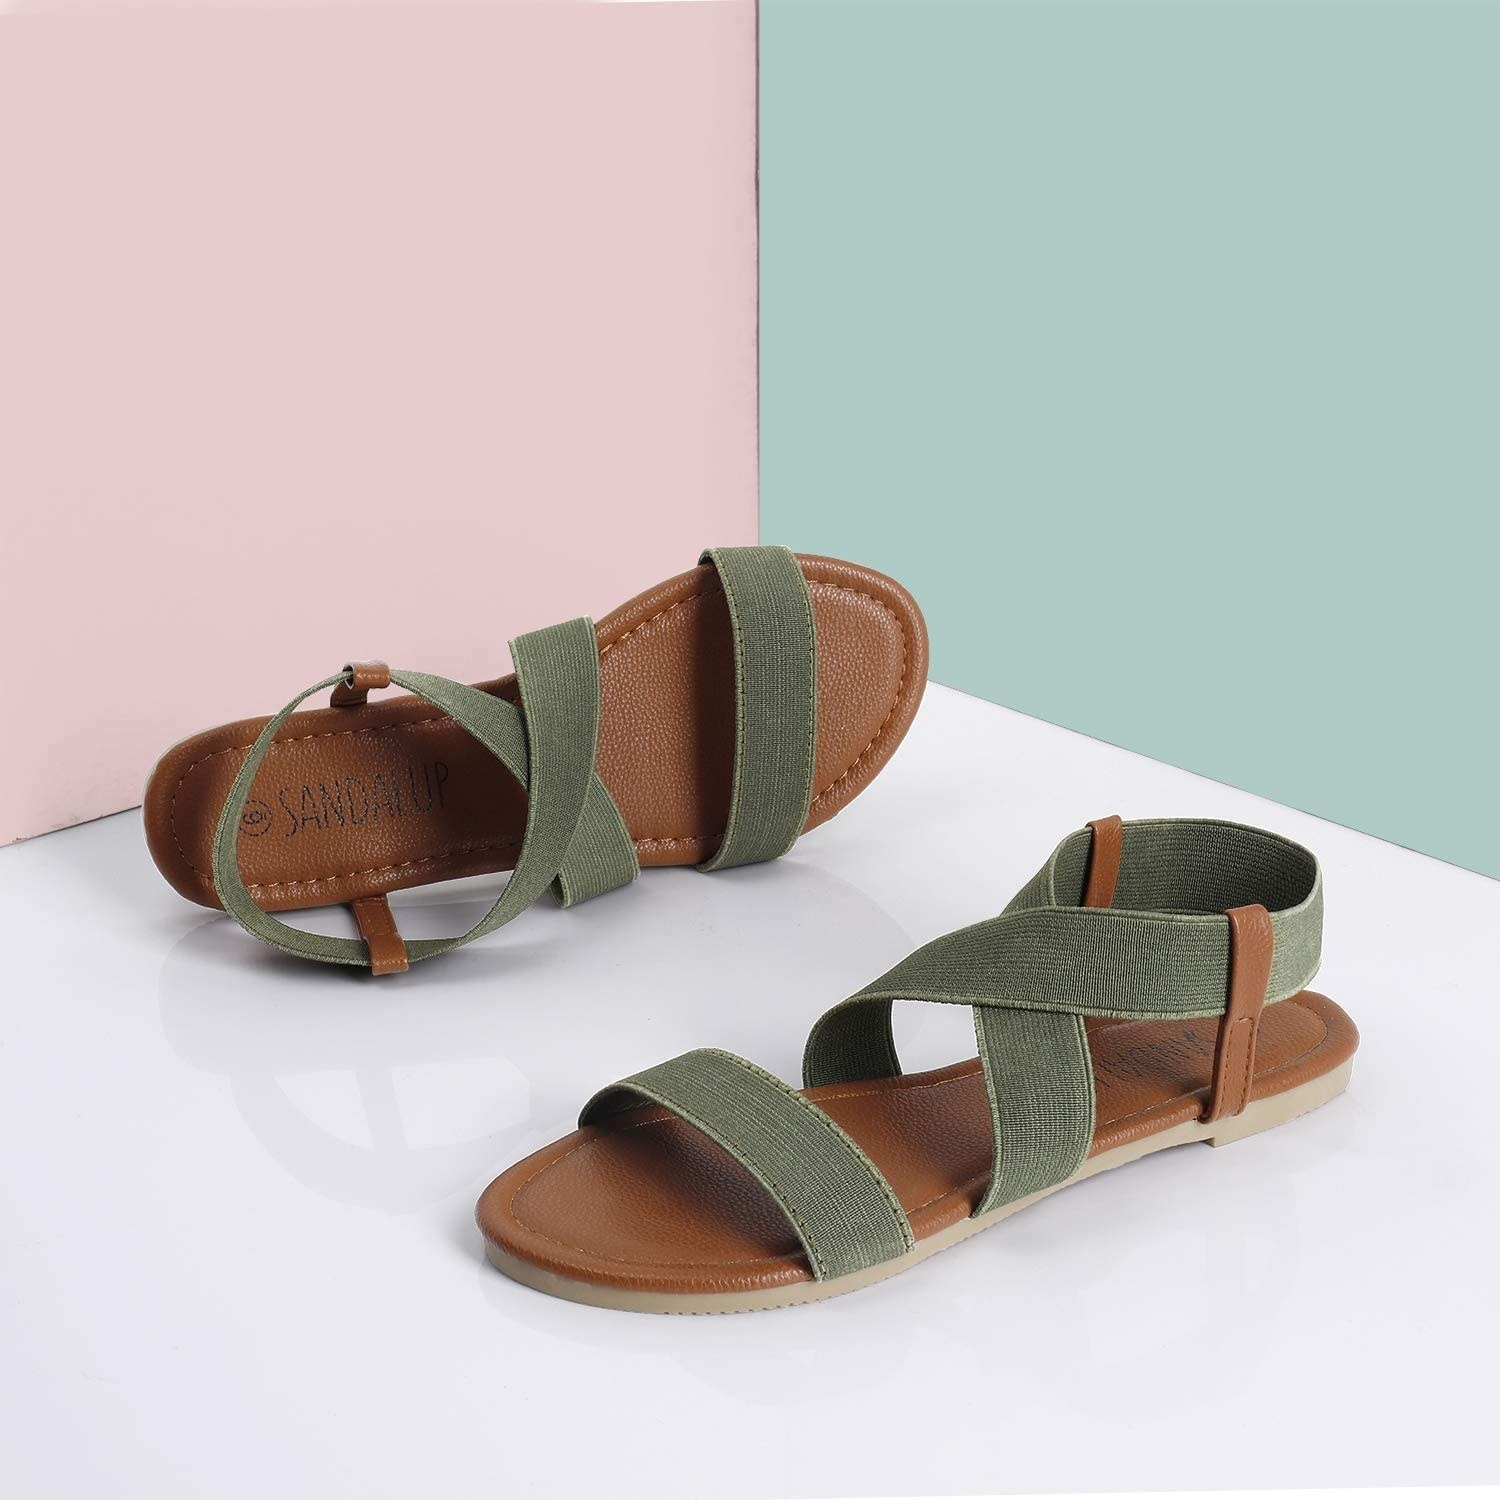 The strappy elastic sandals in olive green